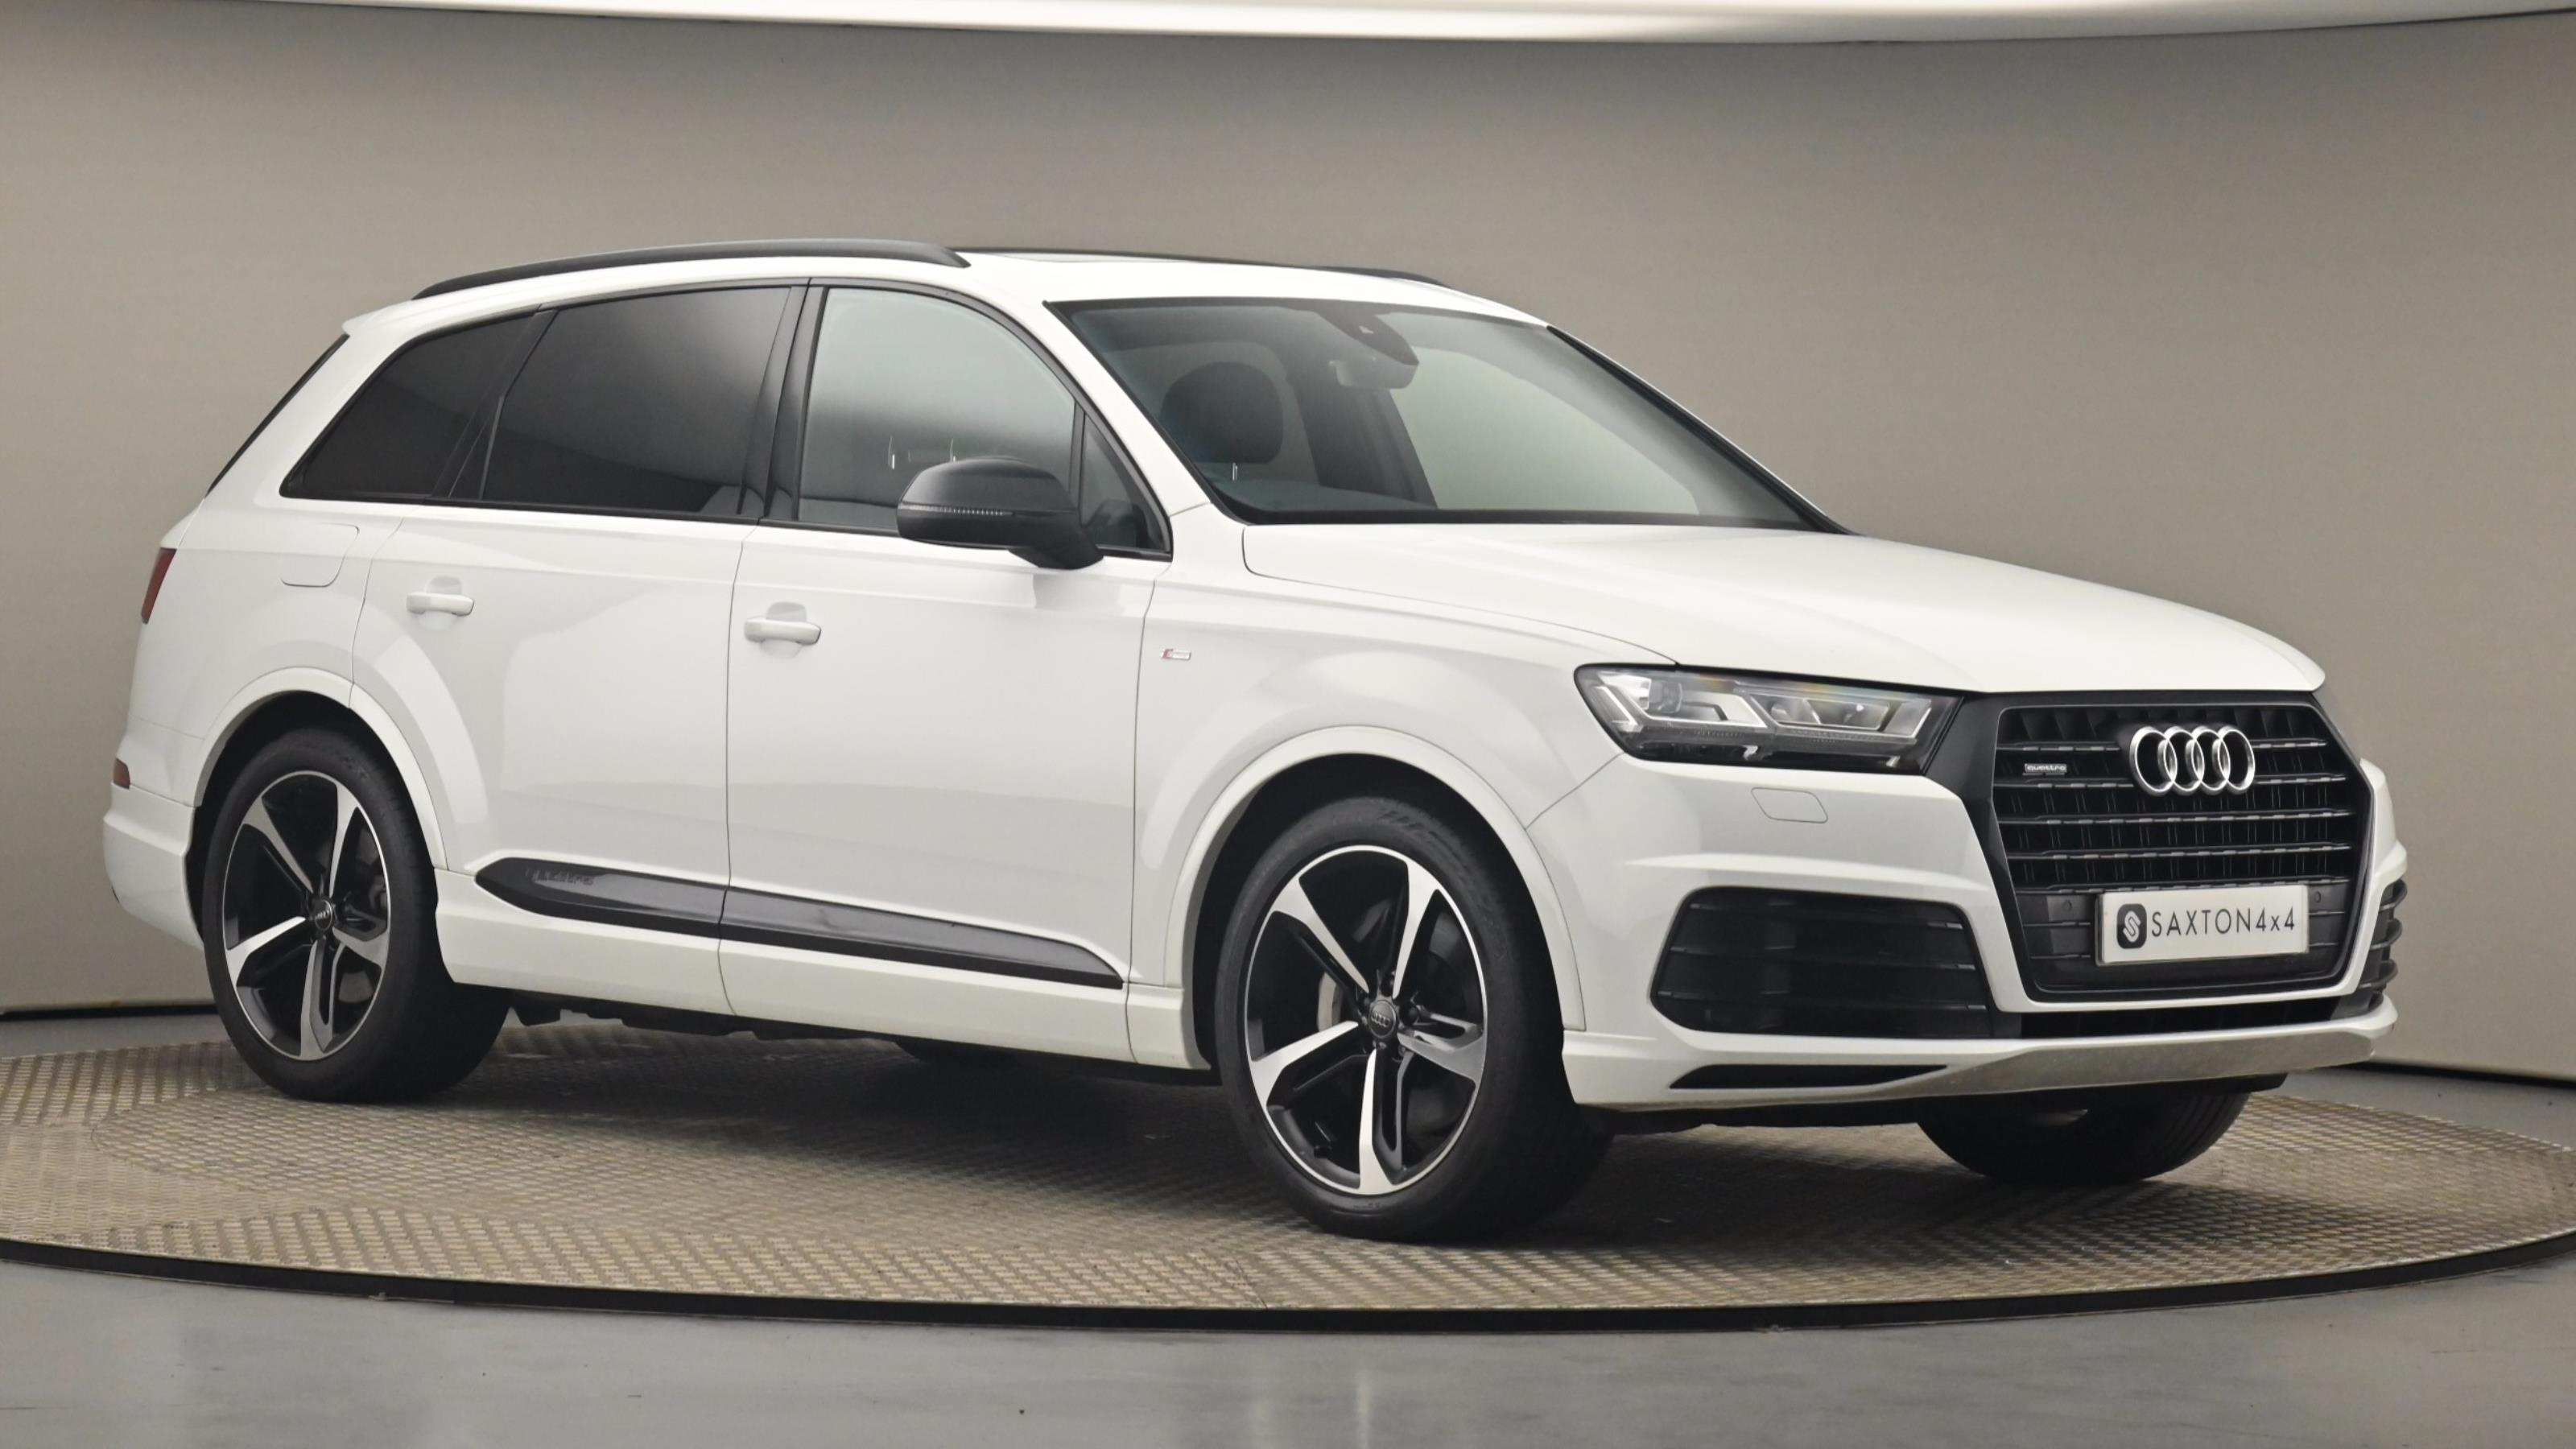 Used 2019 Audi Q7 50 TDI Quattro Black Edition 5dr Tiptronic WHITE at Saxton4x4